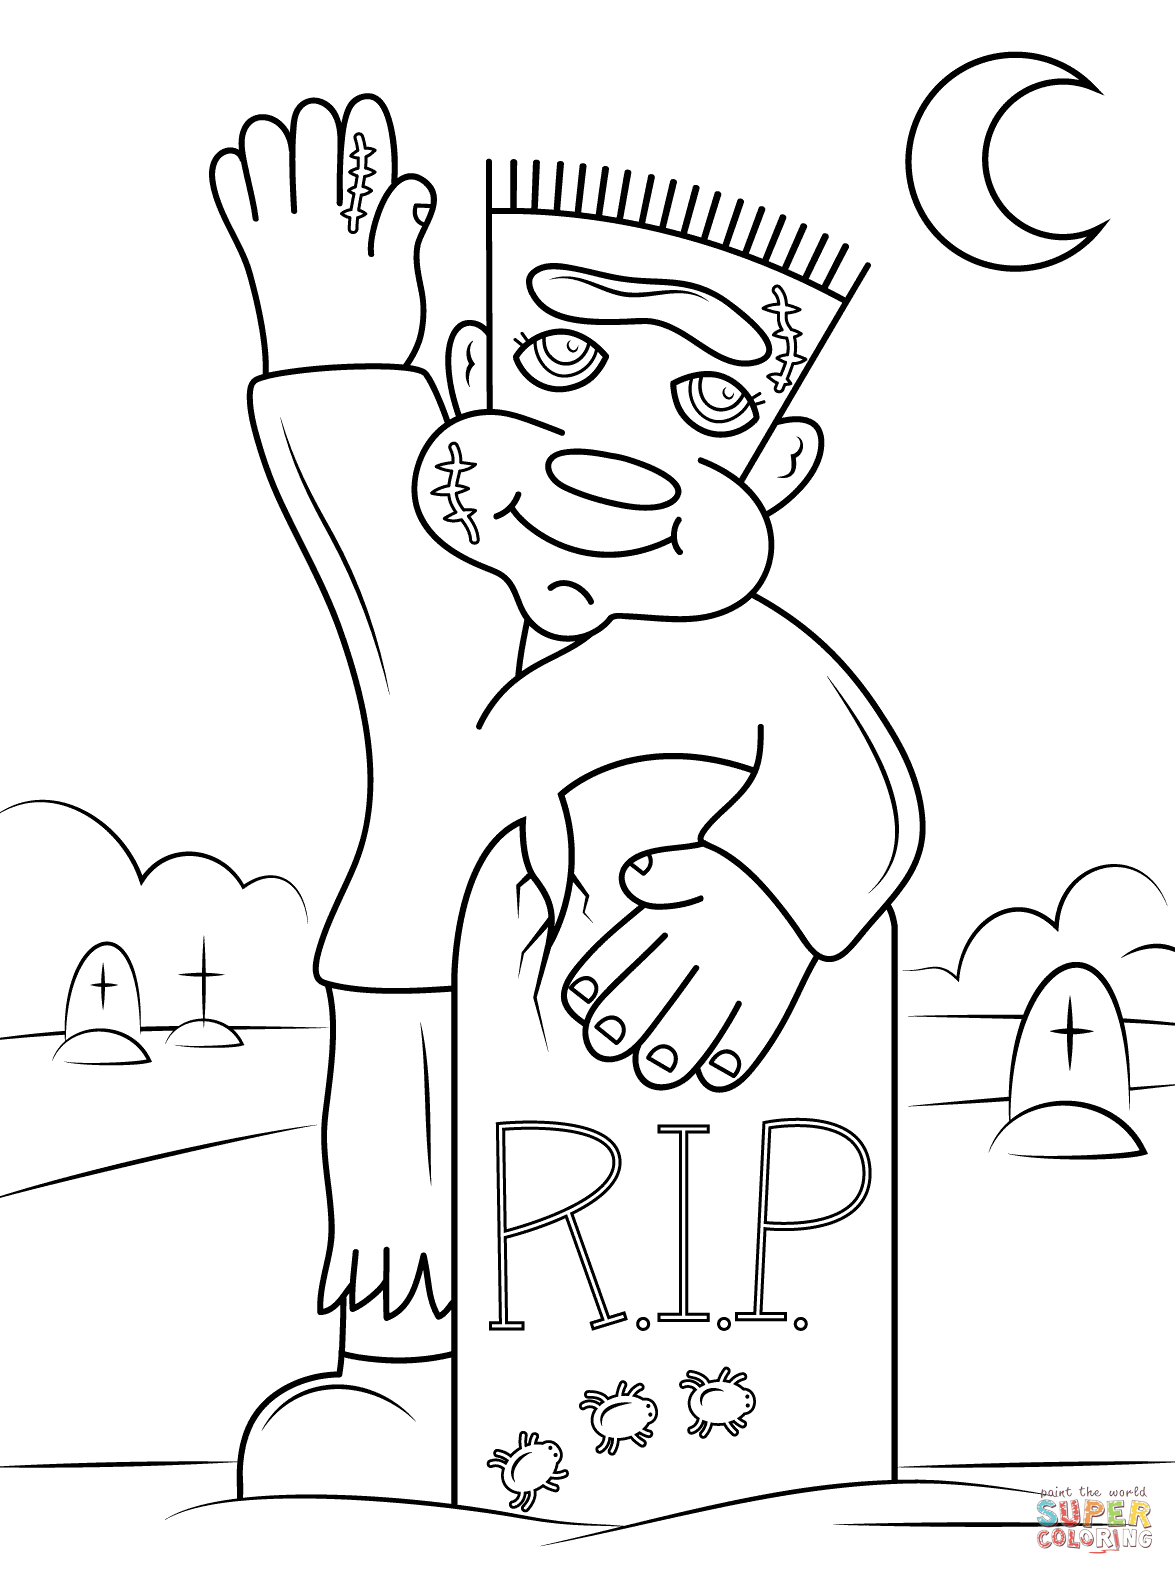 frankenstein cartoon drawing at getdrawings com free for personal